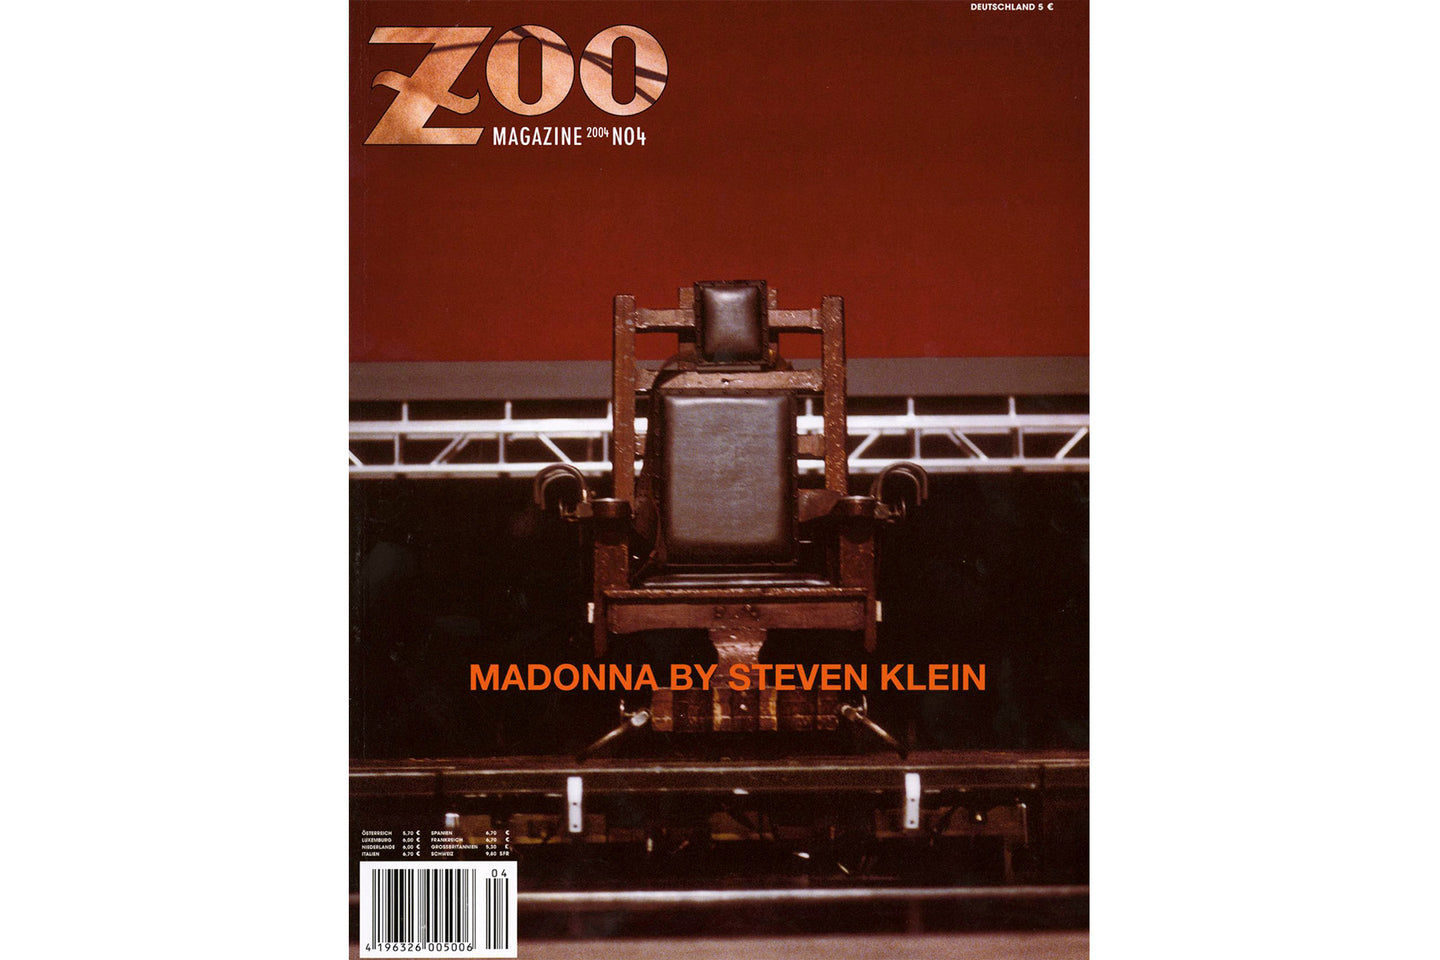 Madonna by Steven Klein, Zoo Magazine No.04 2004